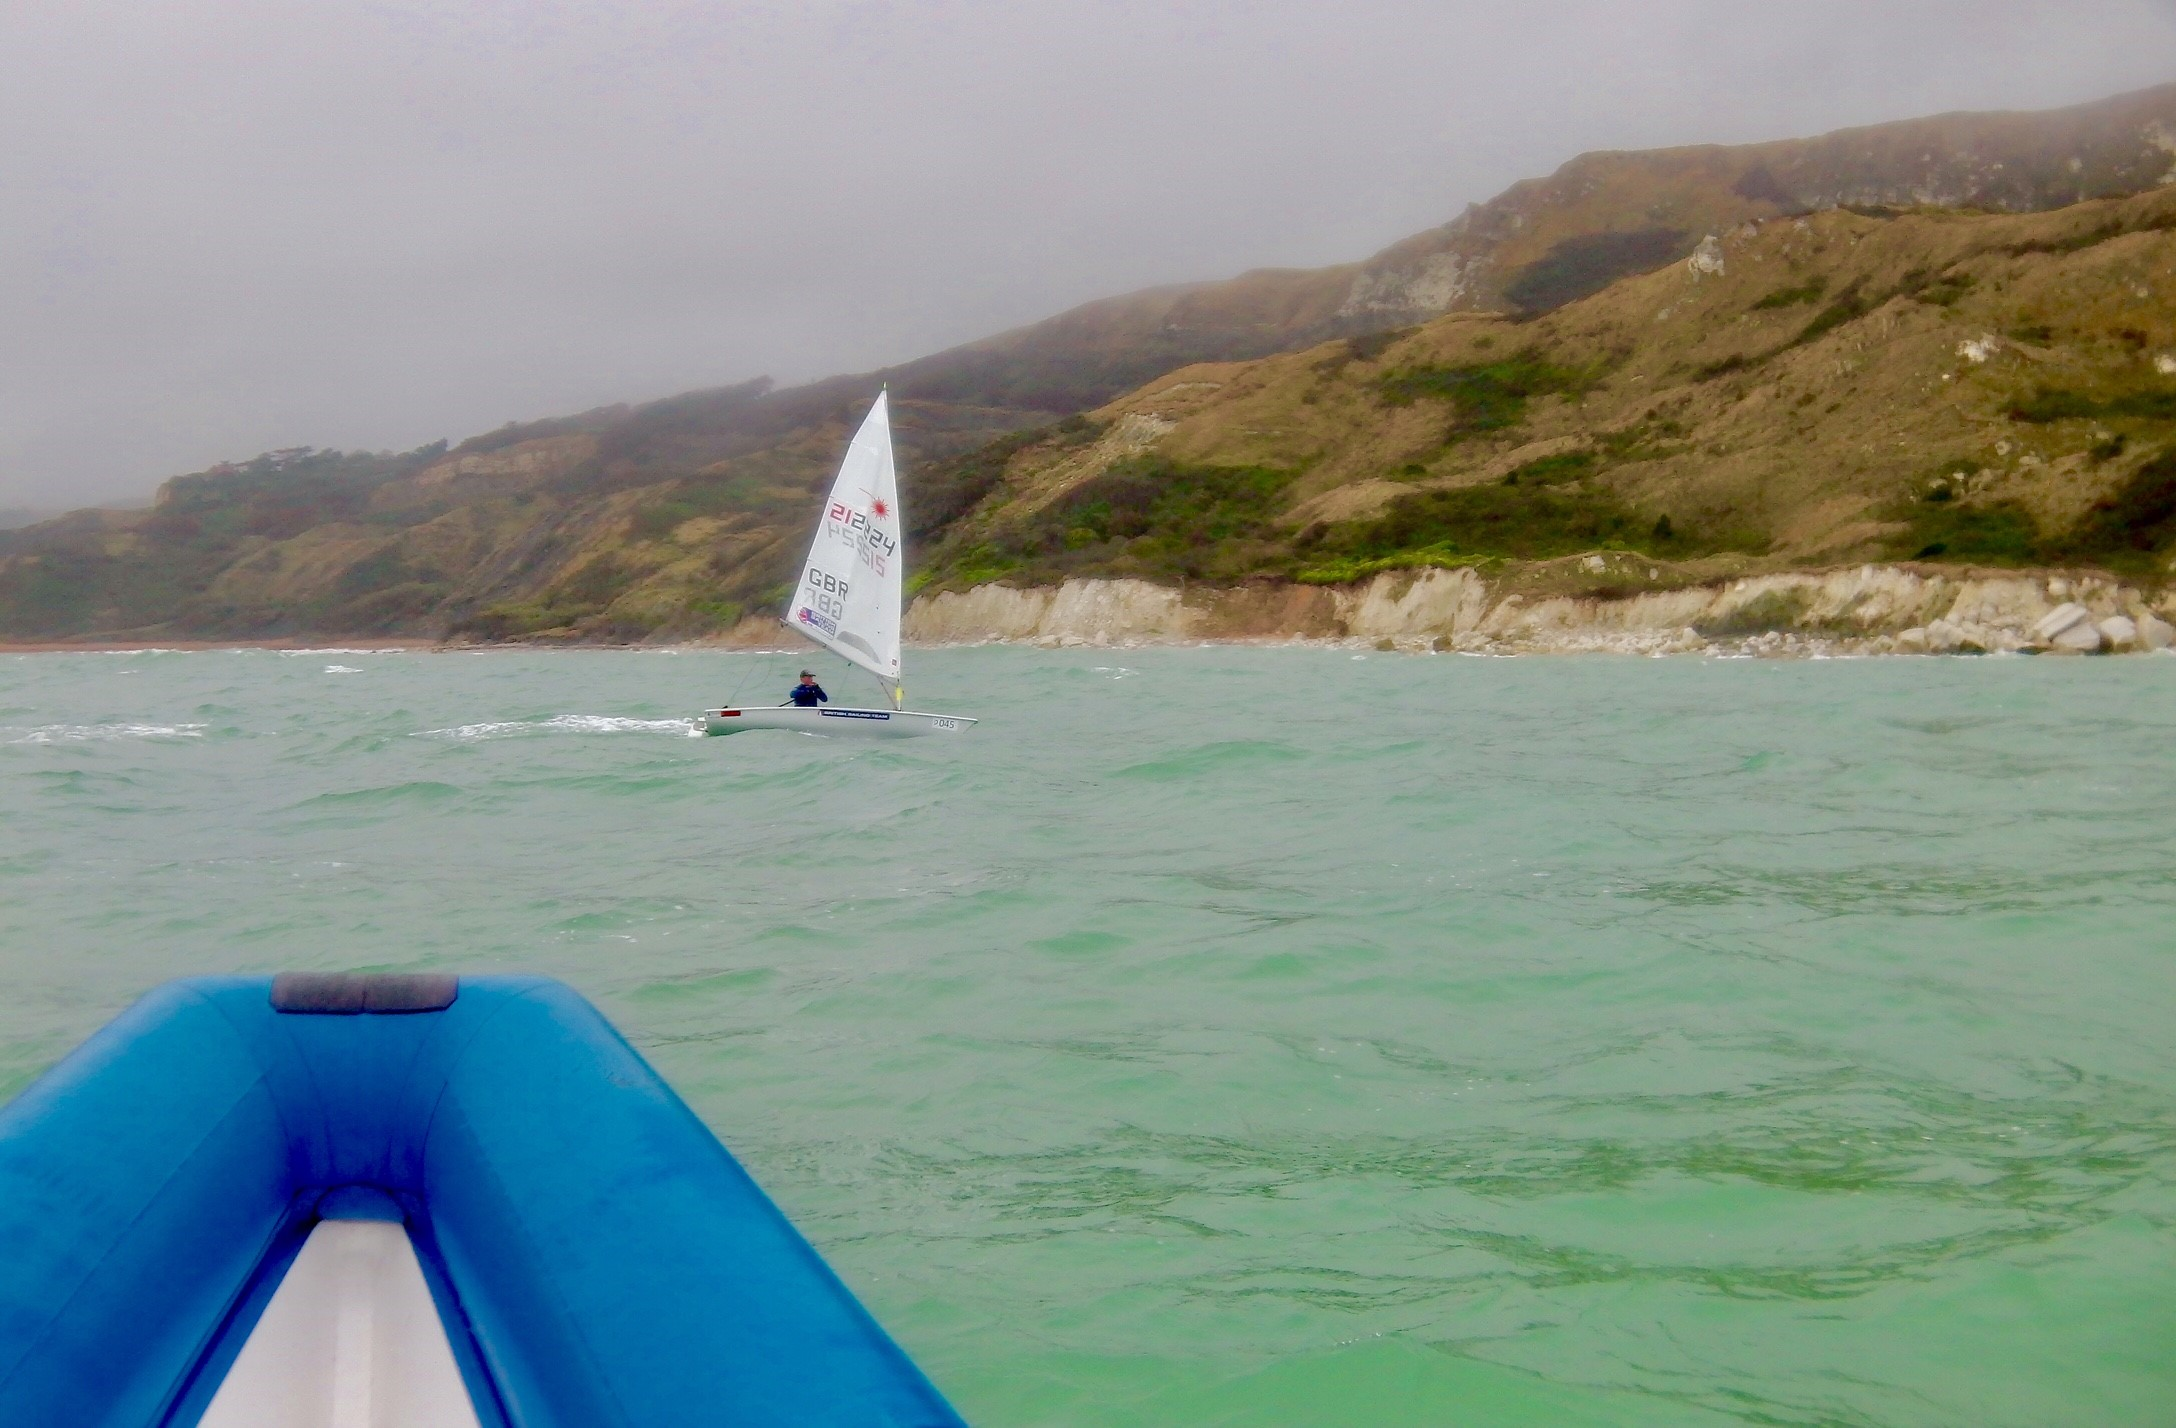 First winter training session in Weymouth - the classic to Osmington Cliffs and back!